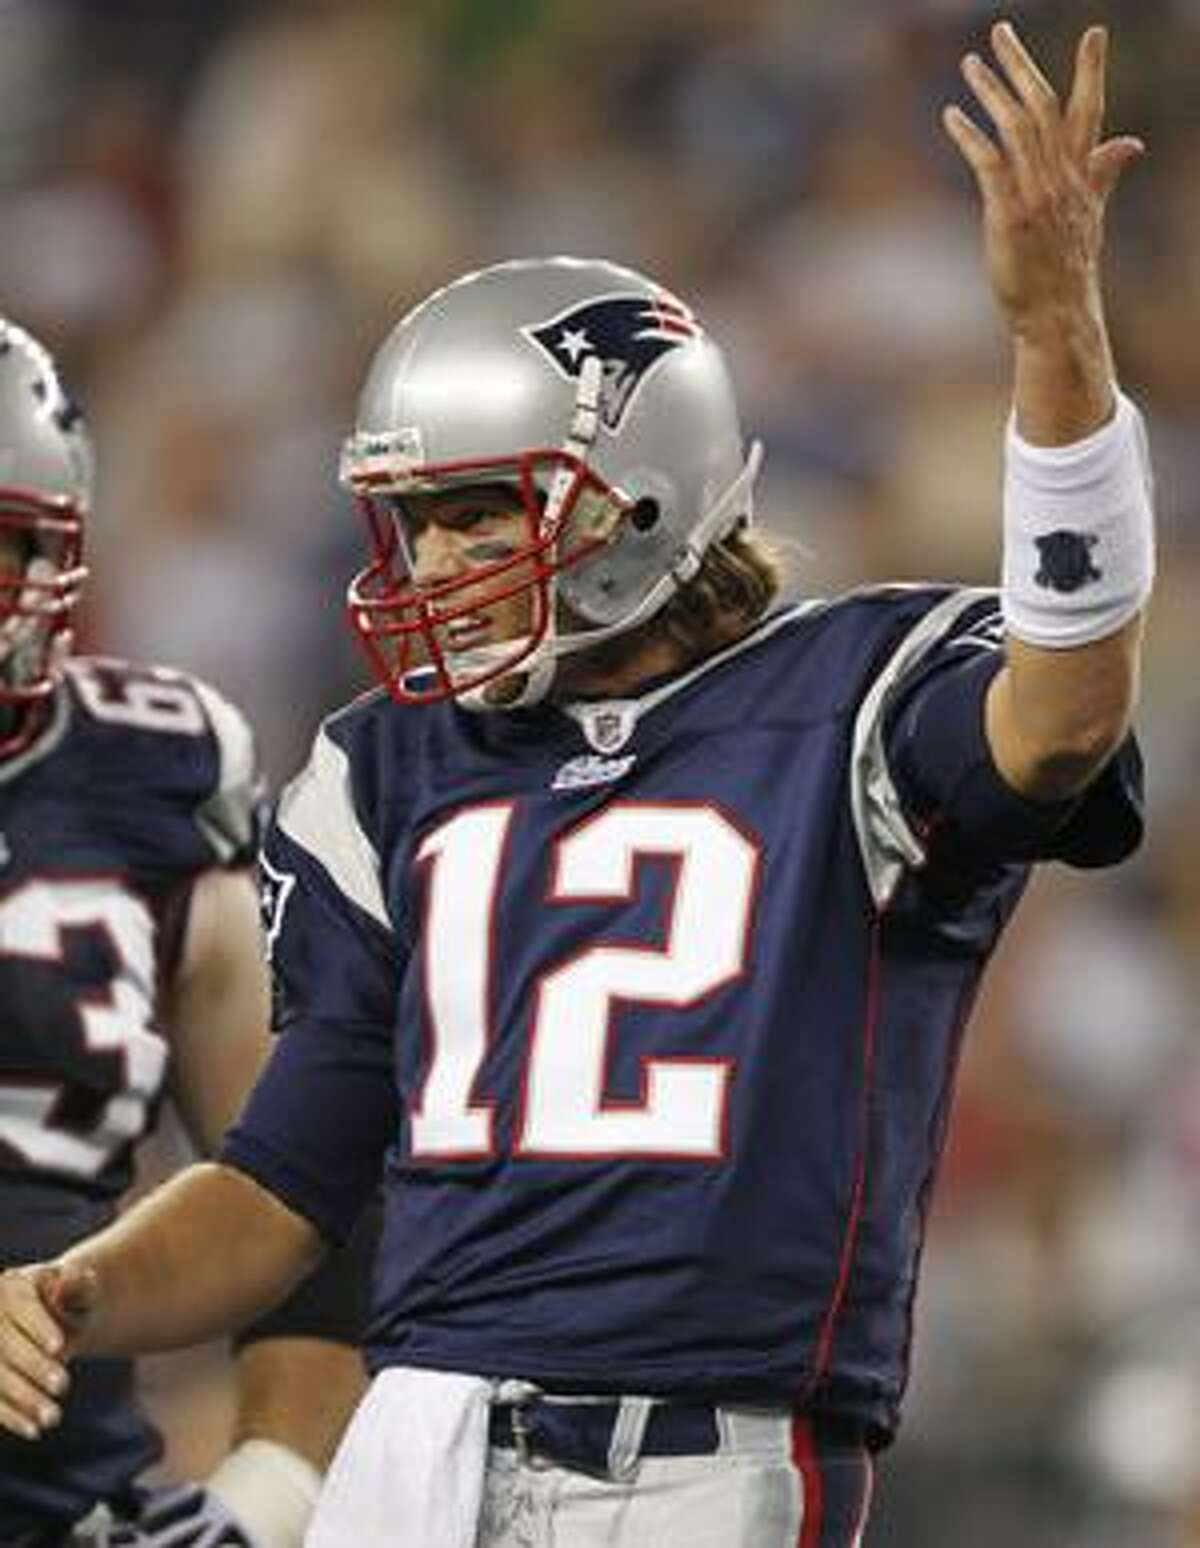 New England Patriots quarterback Tom Brady (12) protests a call in the first half of an NFL preseason football game against the St. Louis Rams on Thursday, Aug. 26, 2010, in Foxborough, Mass. (AP Photo/Michael Dwyer)